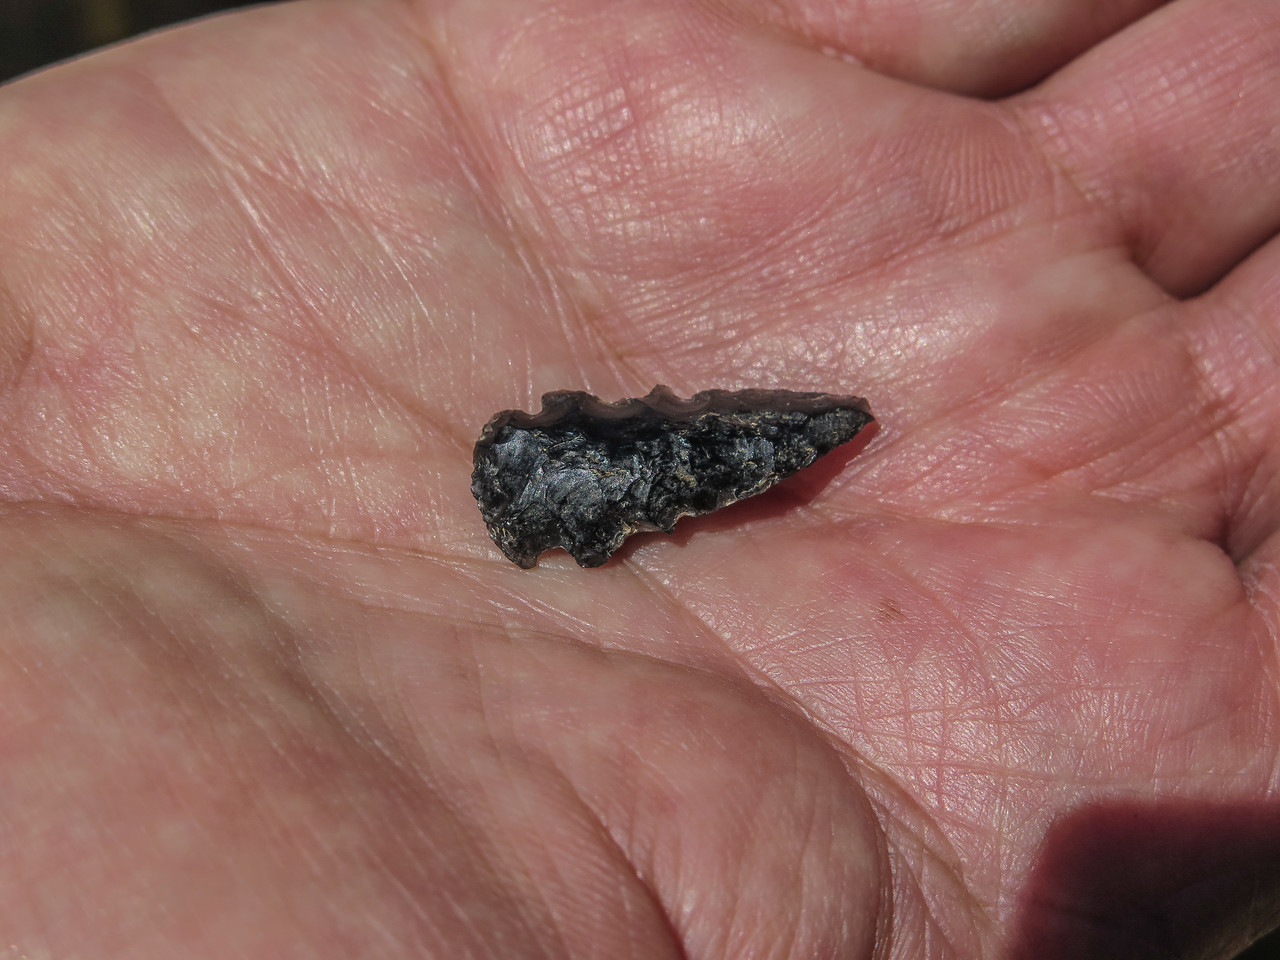 Day 2 - Steve Finds an Arrowhead